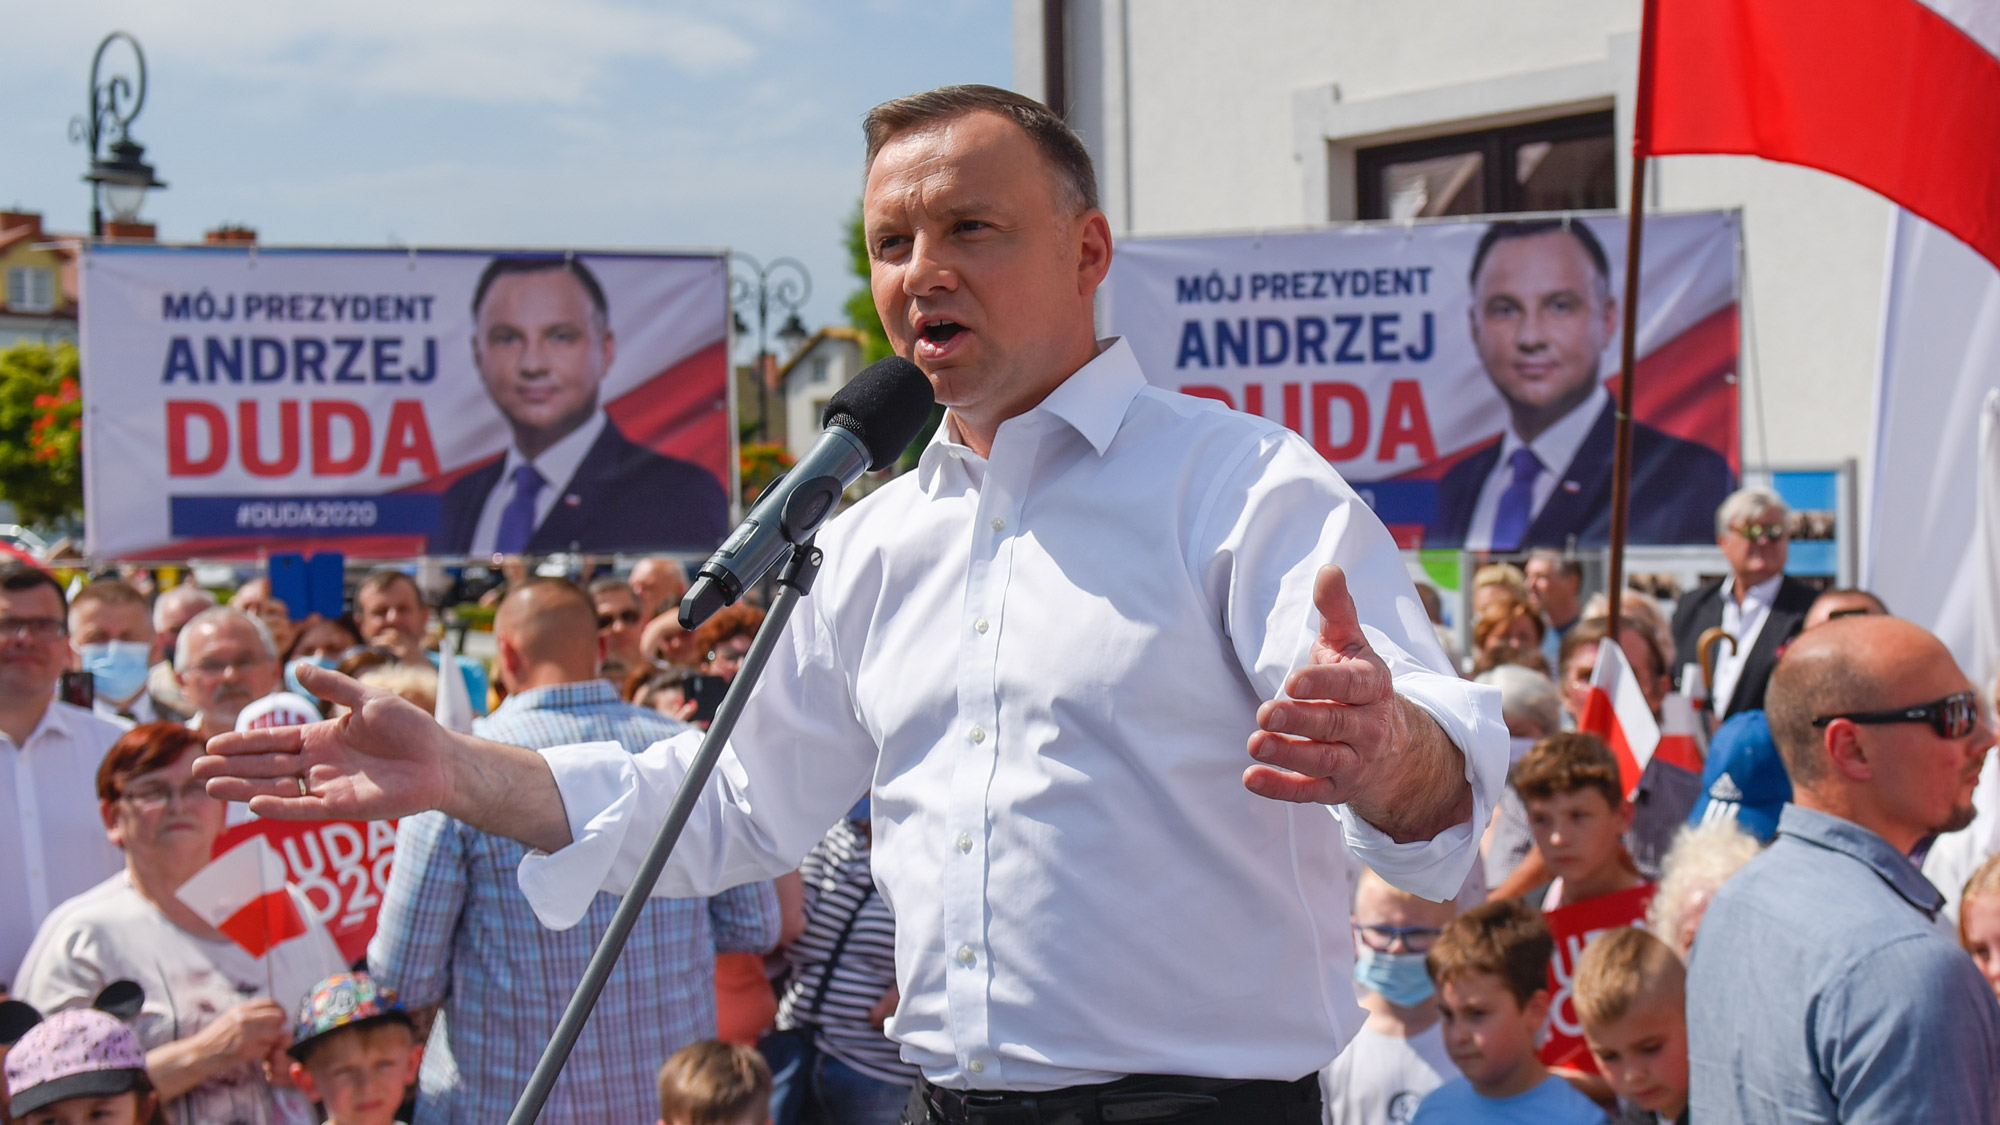 Polish President Andrzej Duda delivers a speech for locals and supporters during a presidential campaign ahead of the rescheduled Presidential Elections on June 17 in Serock, Poland.